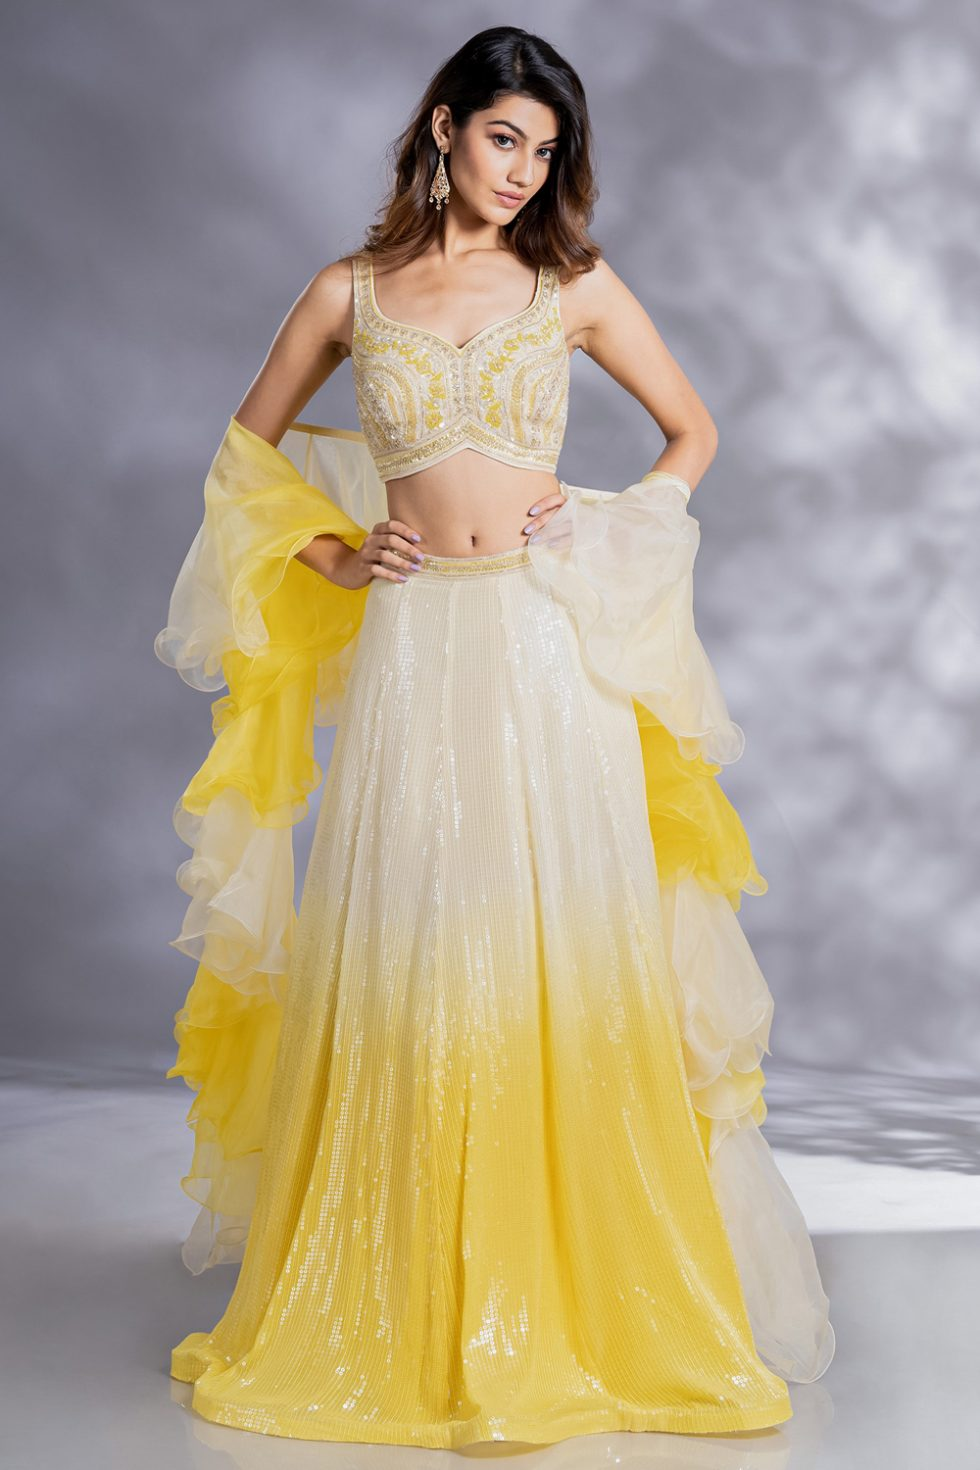 Sunshine yellow lehenga set with a handwork blouse, paani sequin pastel to sunshine yellow ombré skirt and ombré ruffled dupatta.